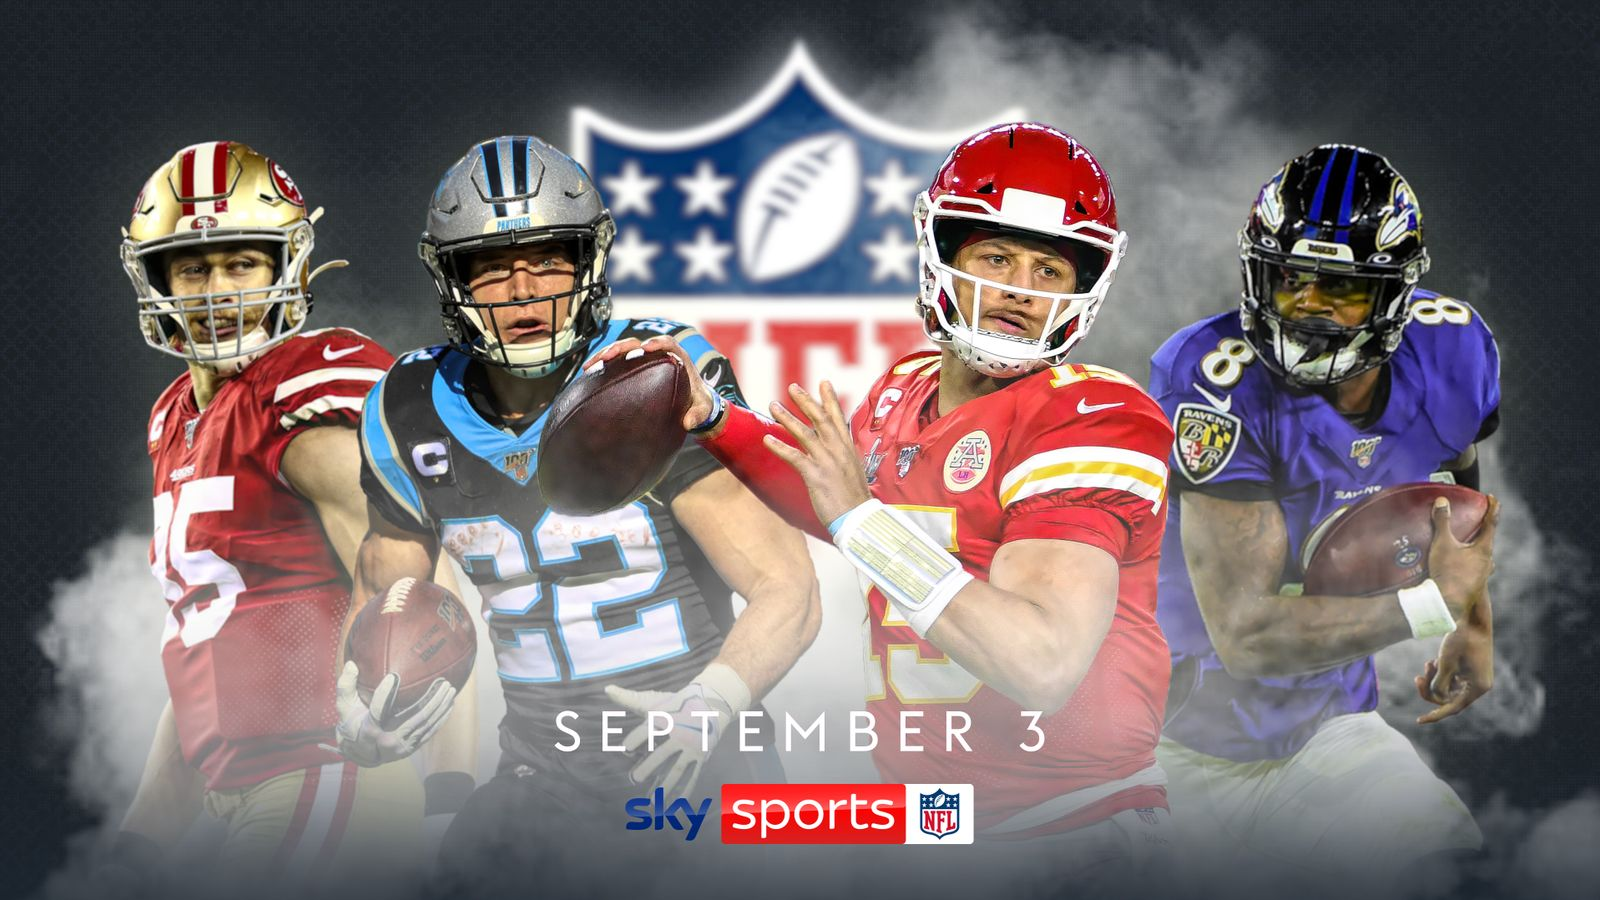 NFL and Sky Sports unveil 'Sky Sports NFL' as part of five-year partnership